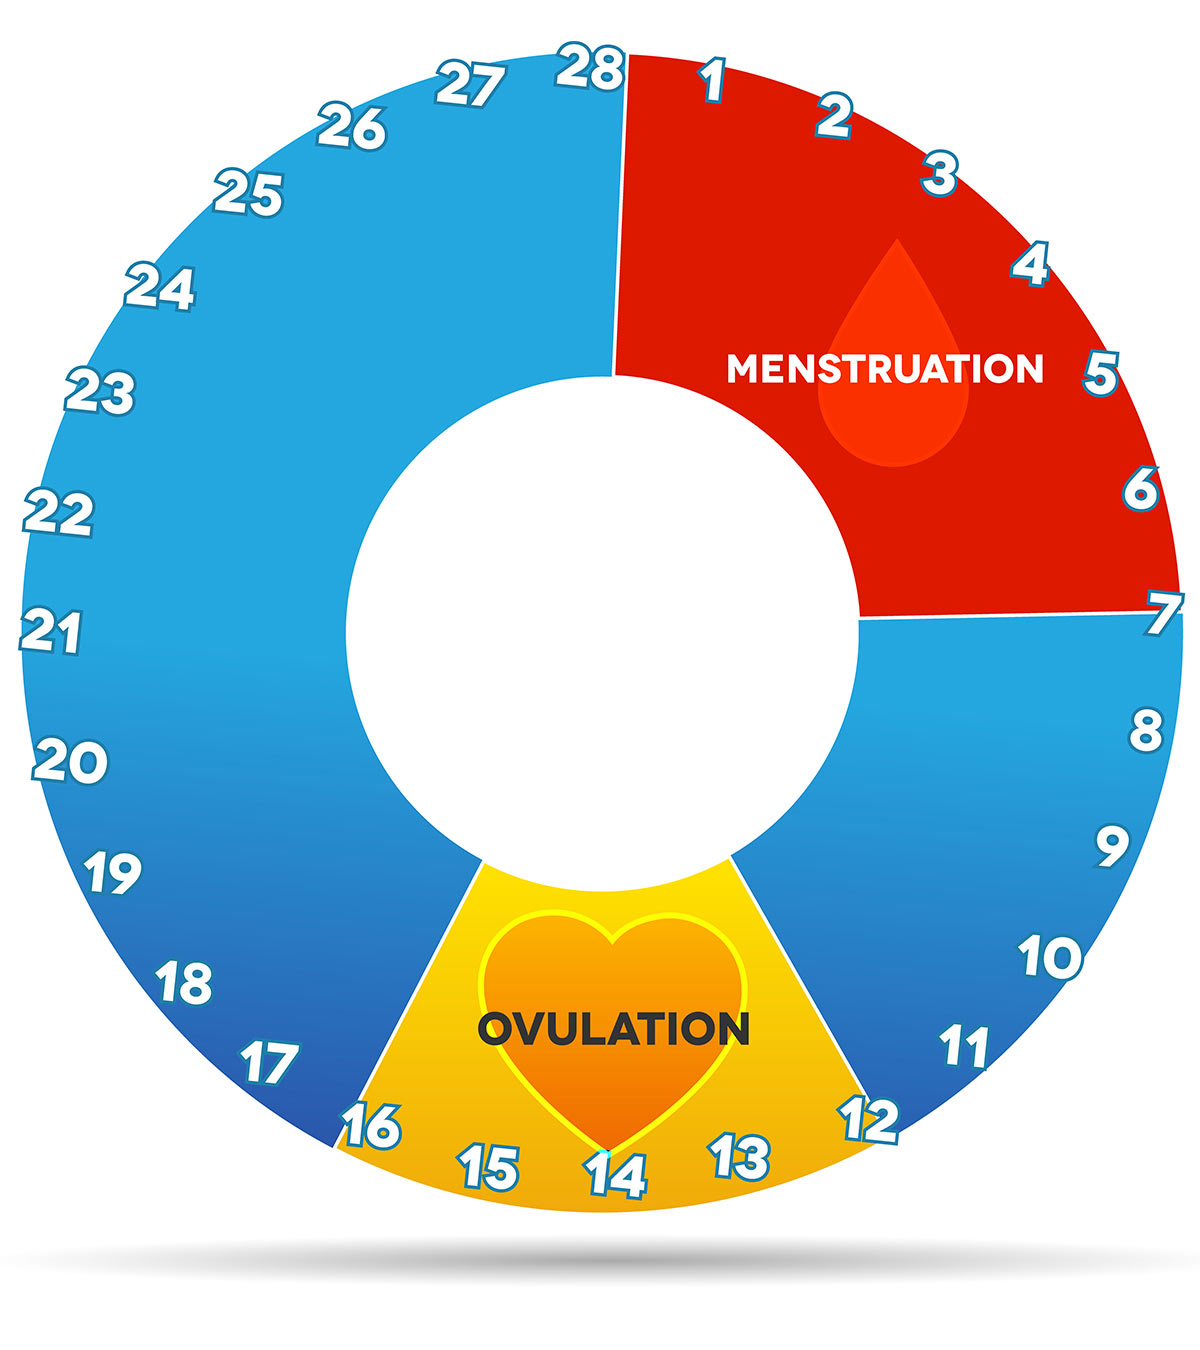 Cervical Mucus During Ovulation - All You Need To Know